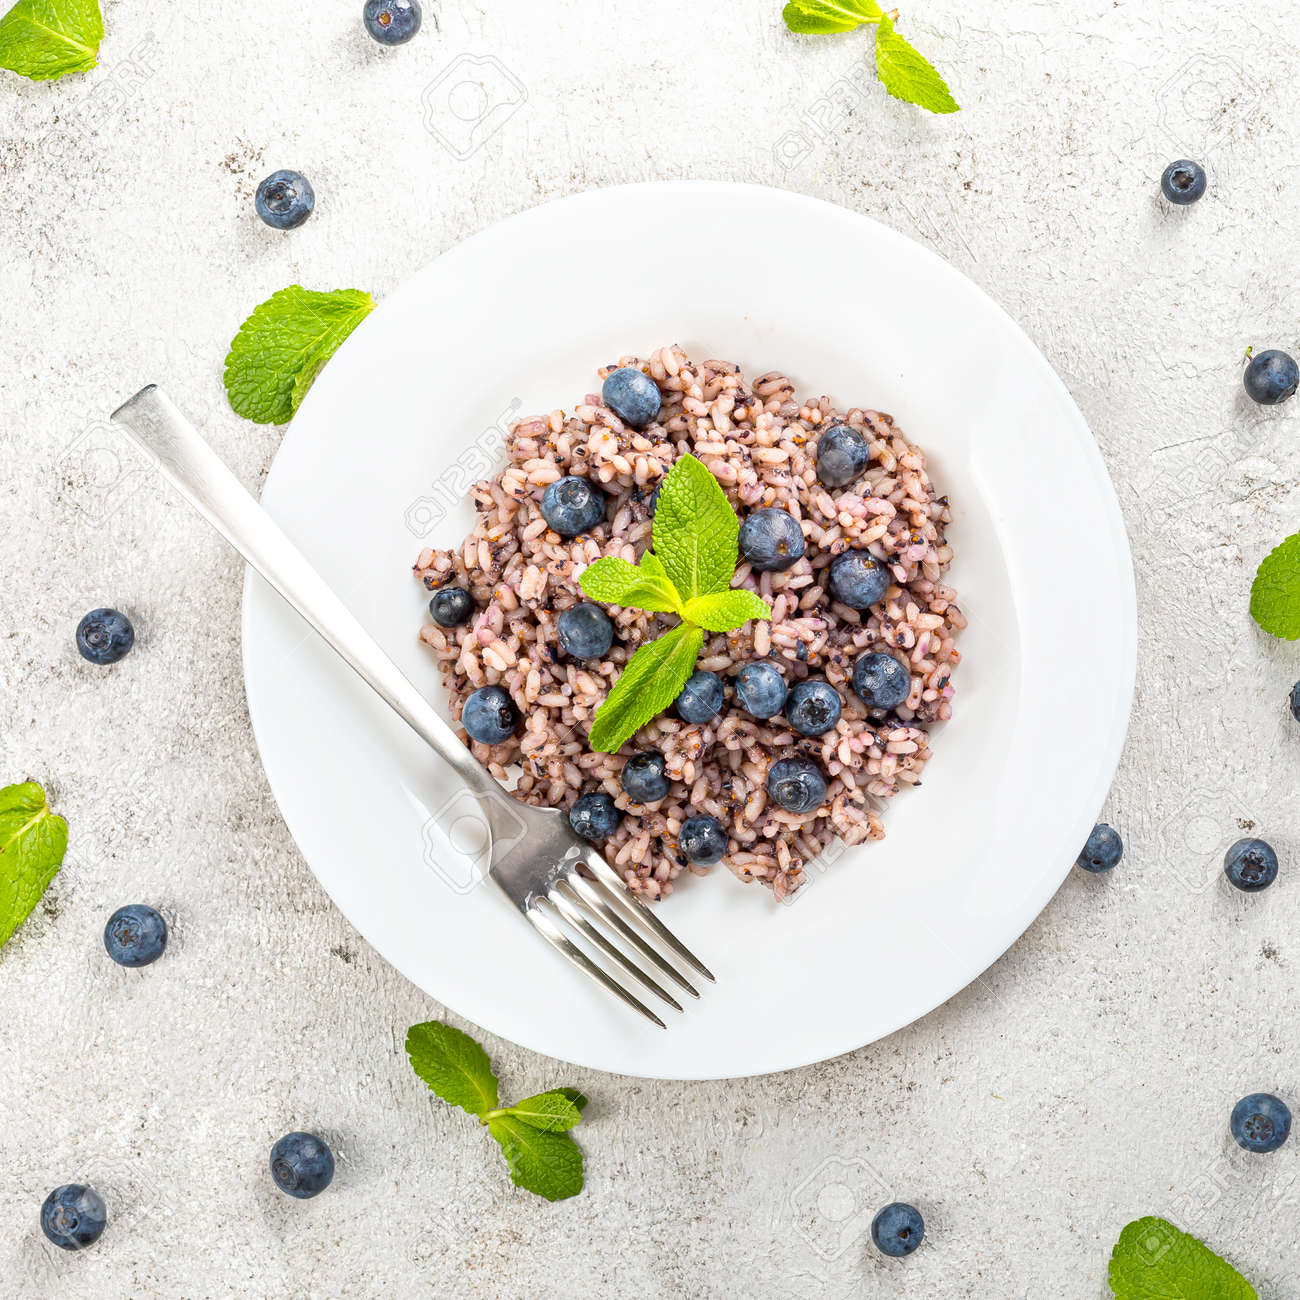 Delicious risotto with blueberries served on lihgt grey concrete table, flat lay - 172007886